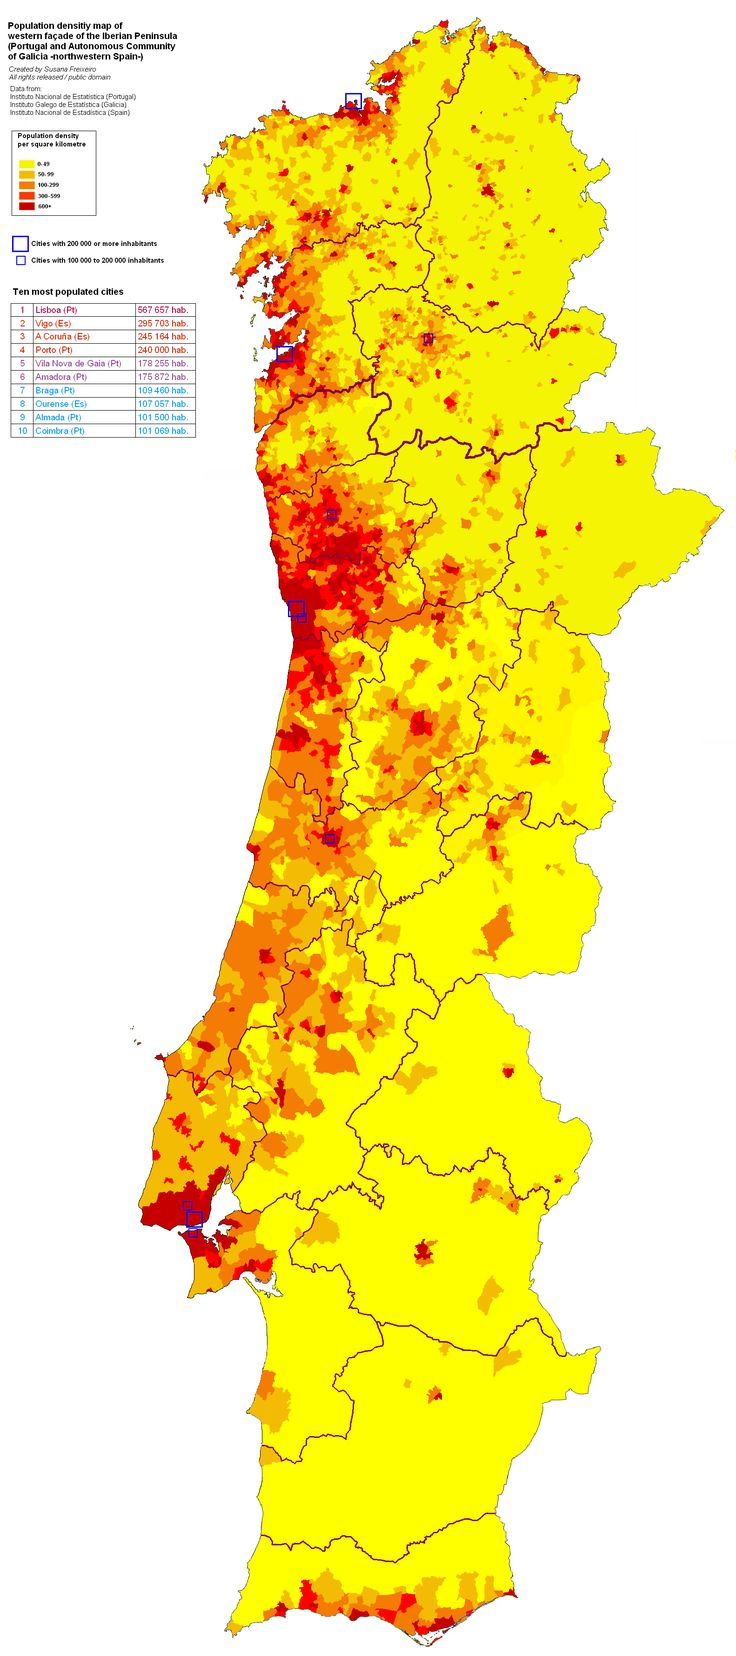 Population density of the western façade of the Iberian Peninsula (Portugal and the Autonomous Community of Galicia -northwestern Spain)